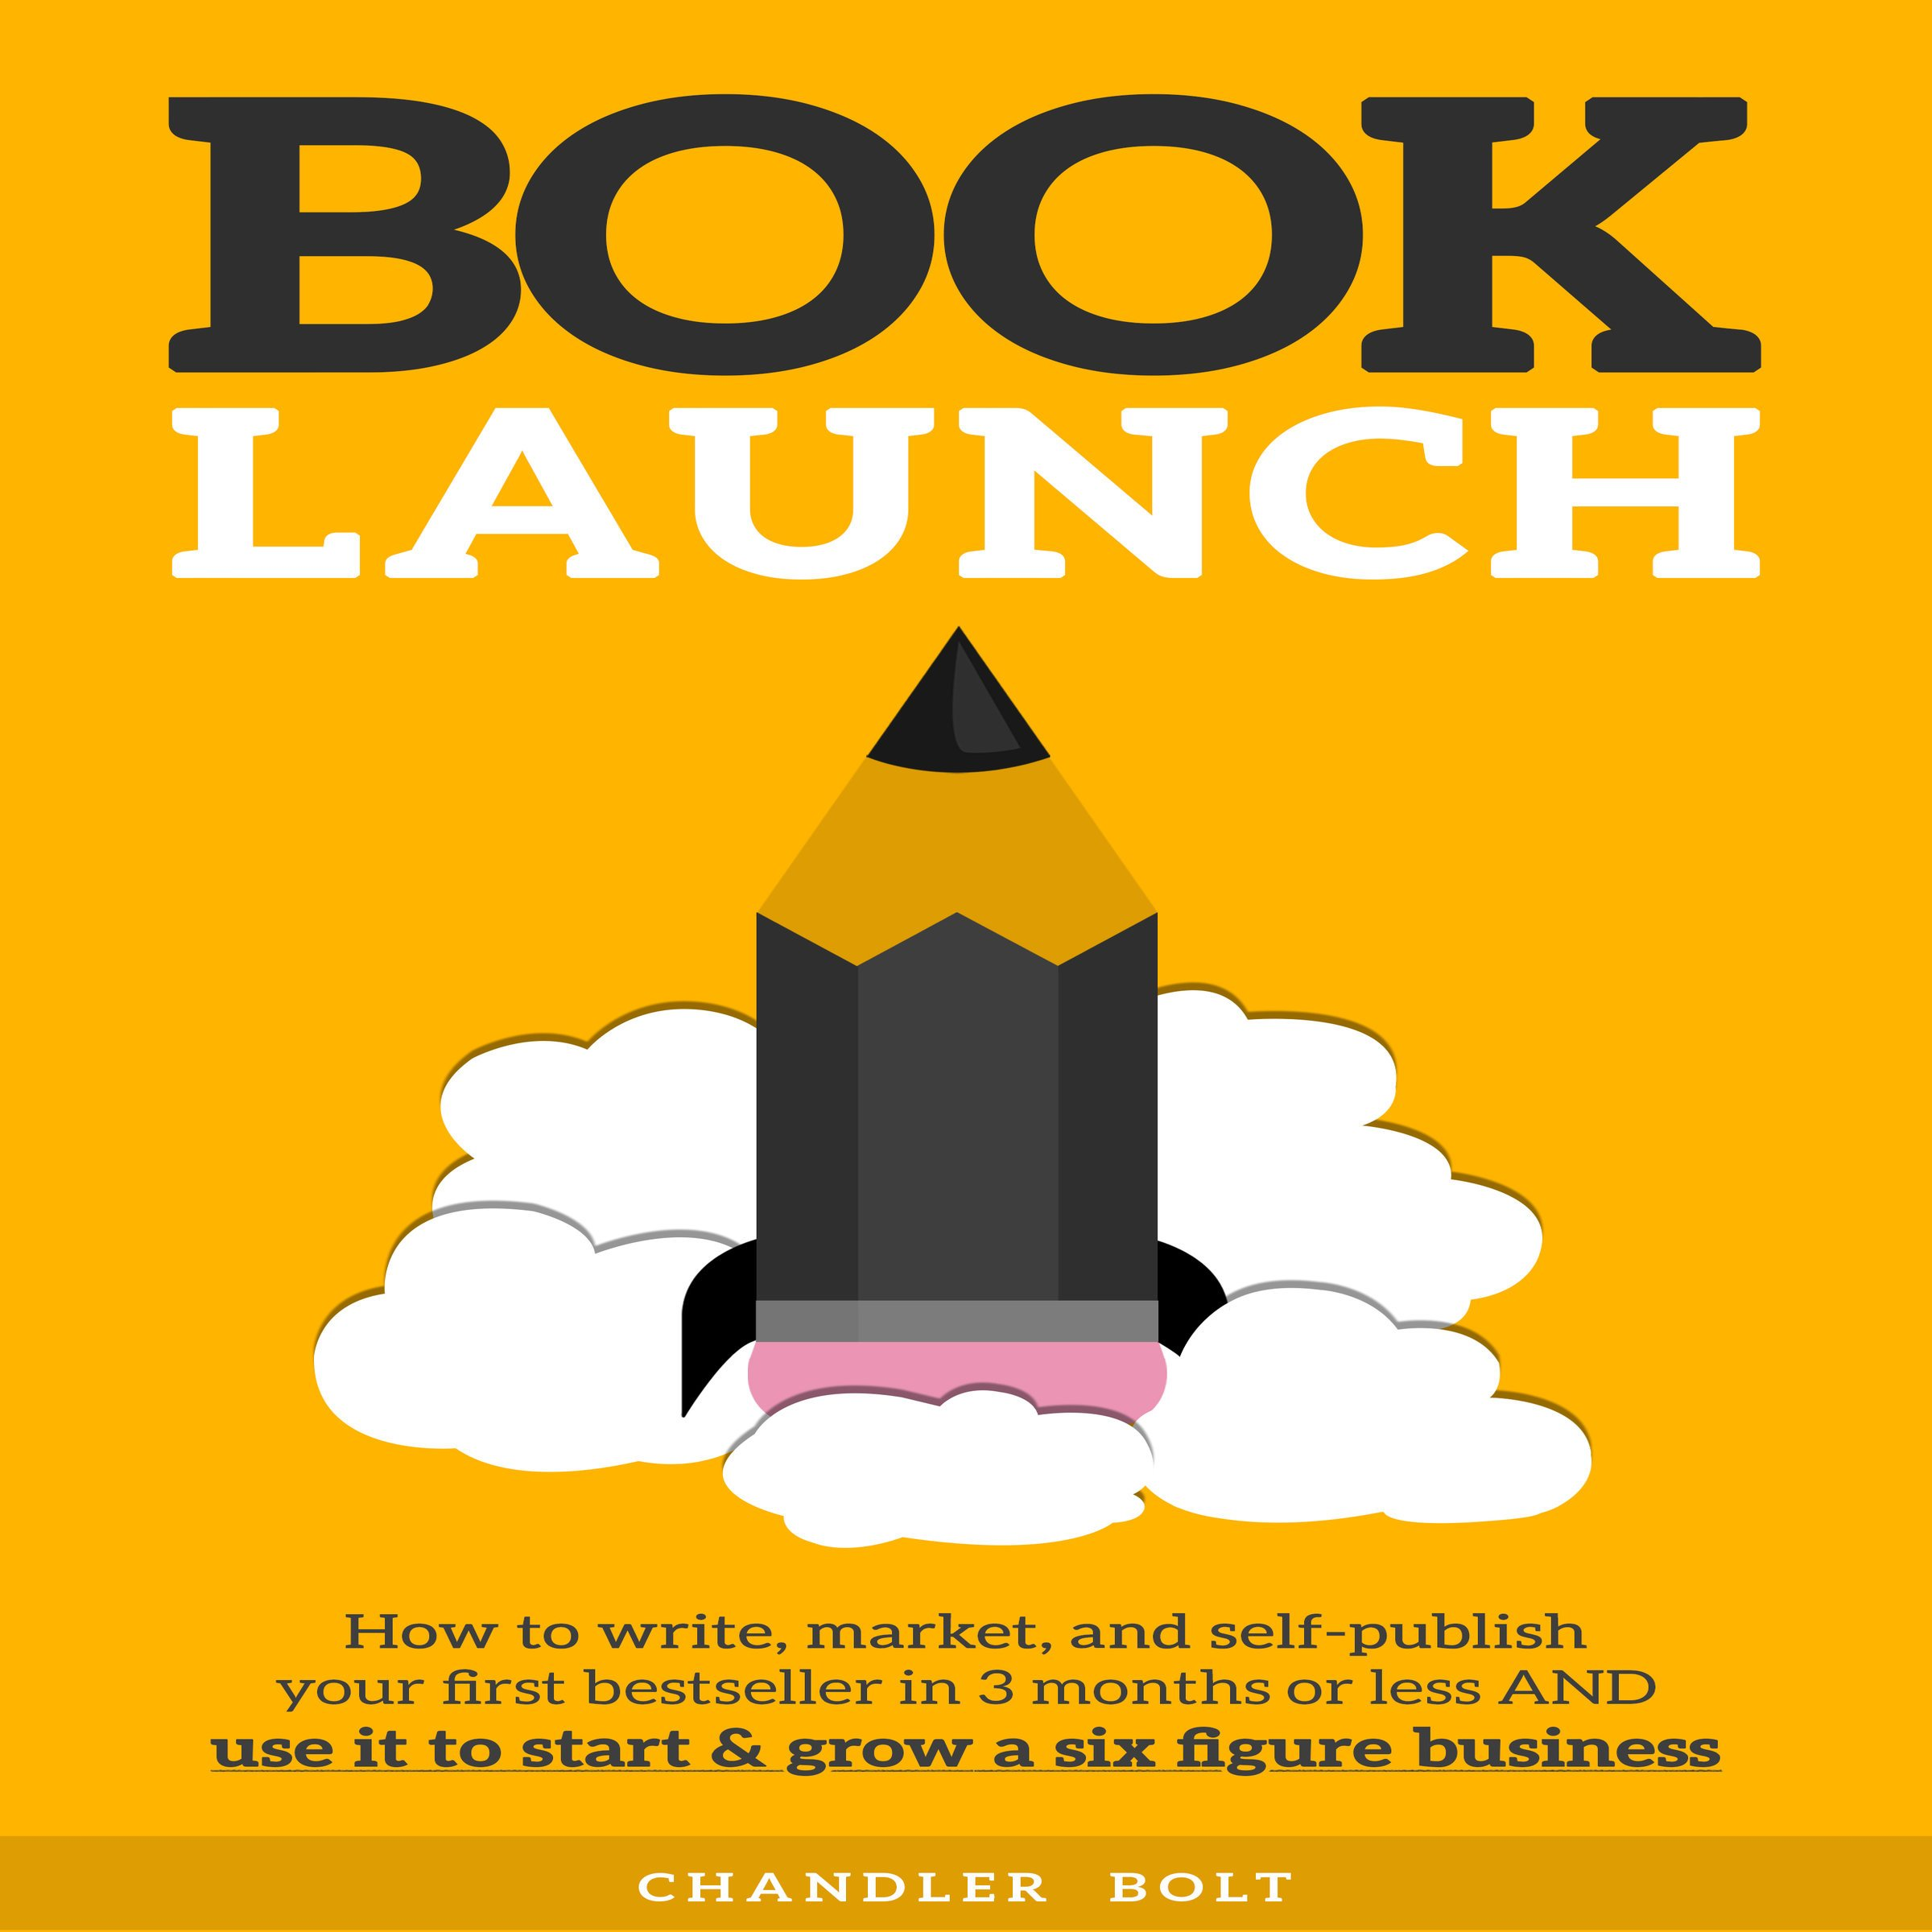 Book Launch: How to Write, Market, Publish Your First Best-Seller